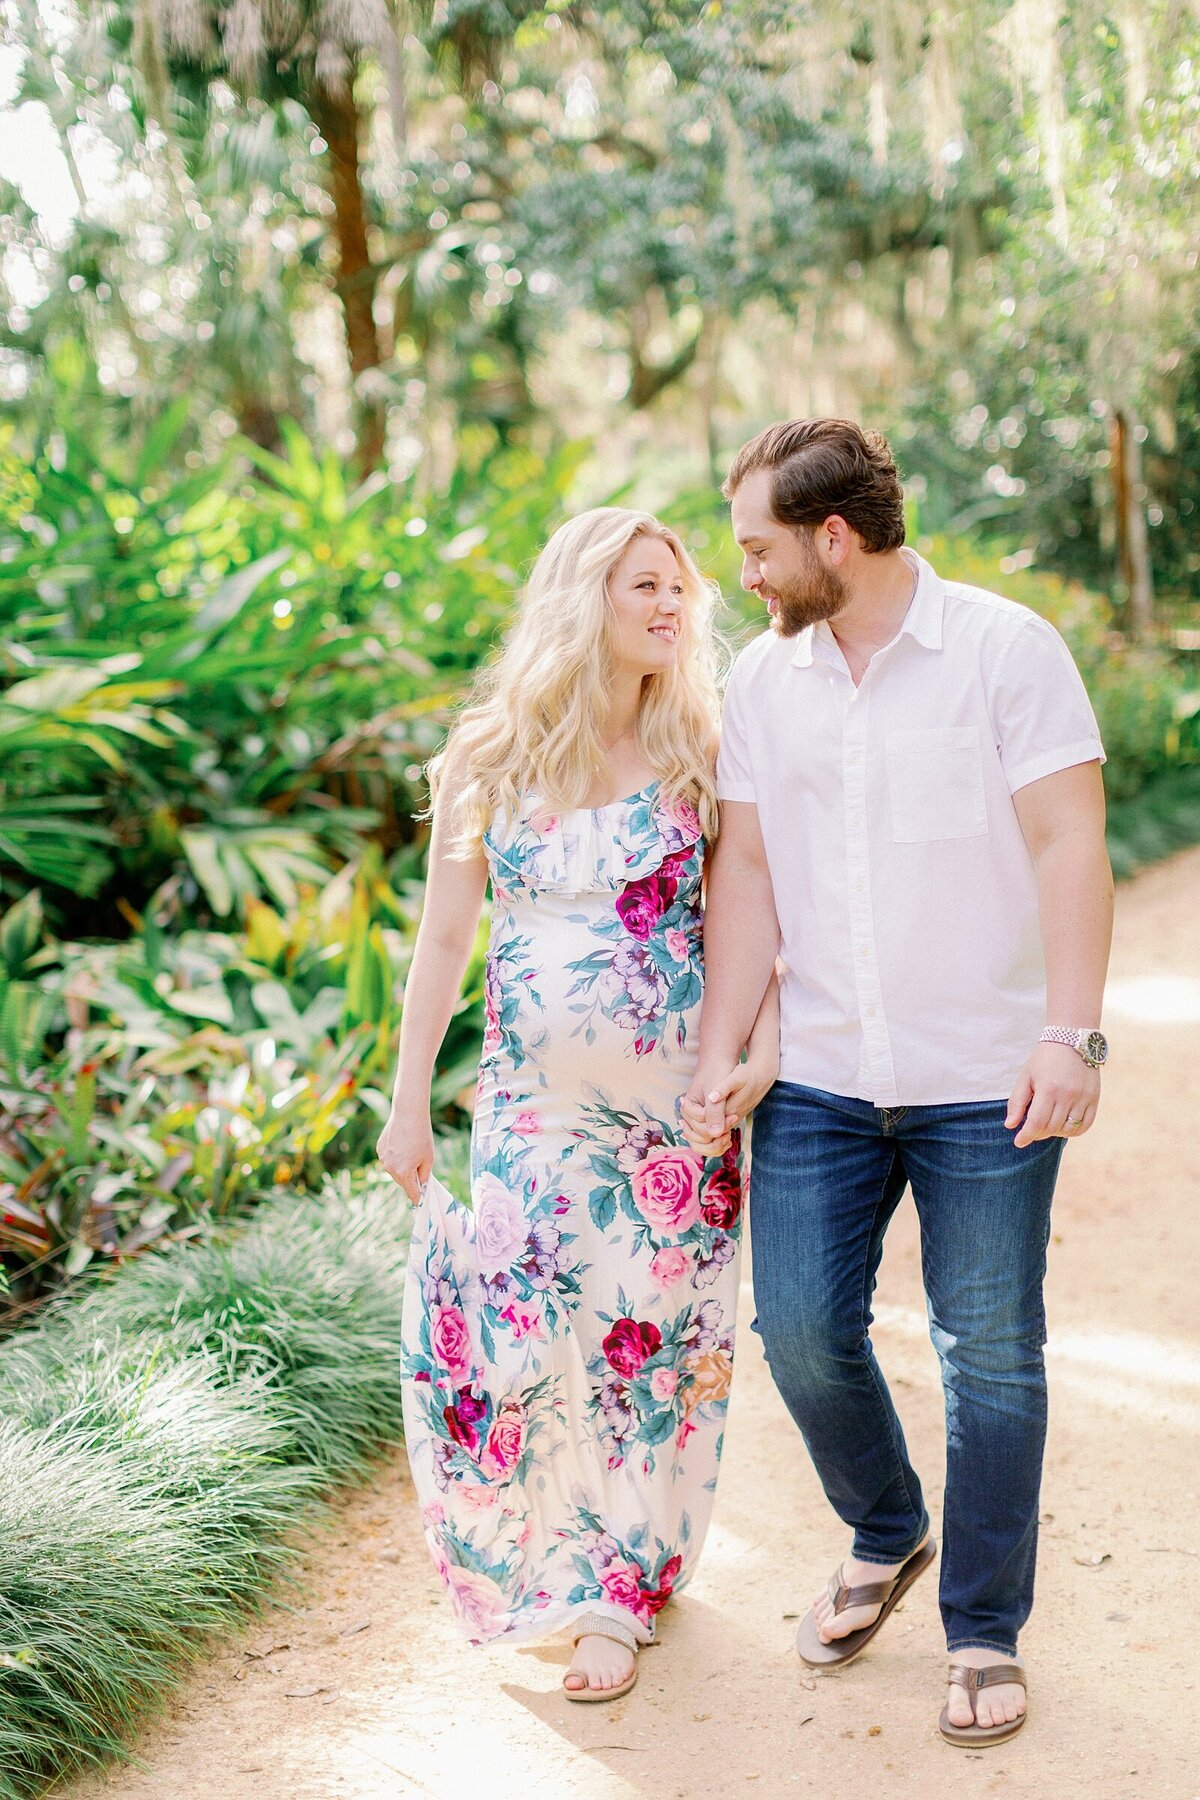 Ashley + Adrian Pamparau Washington Oaks State Park Maternity Session Photographer Casie Marie Photography-24